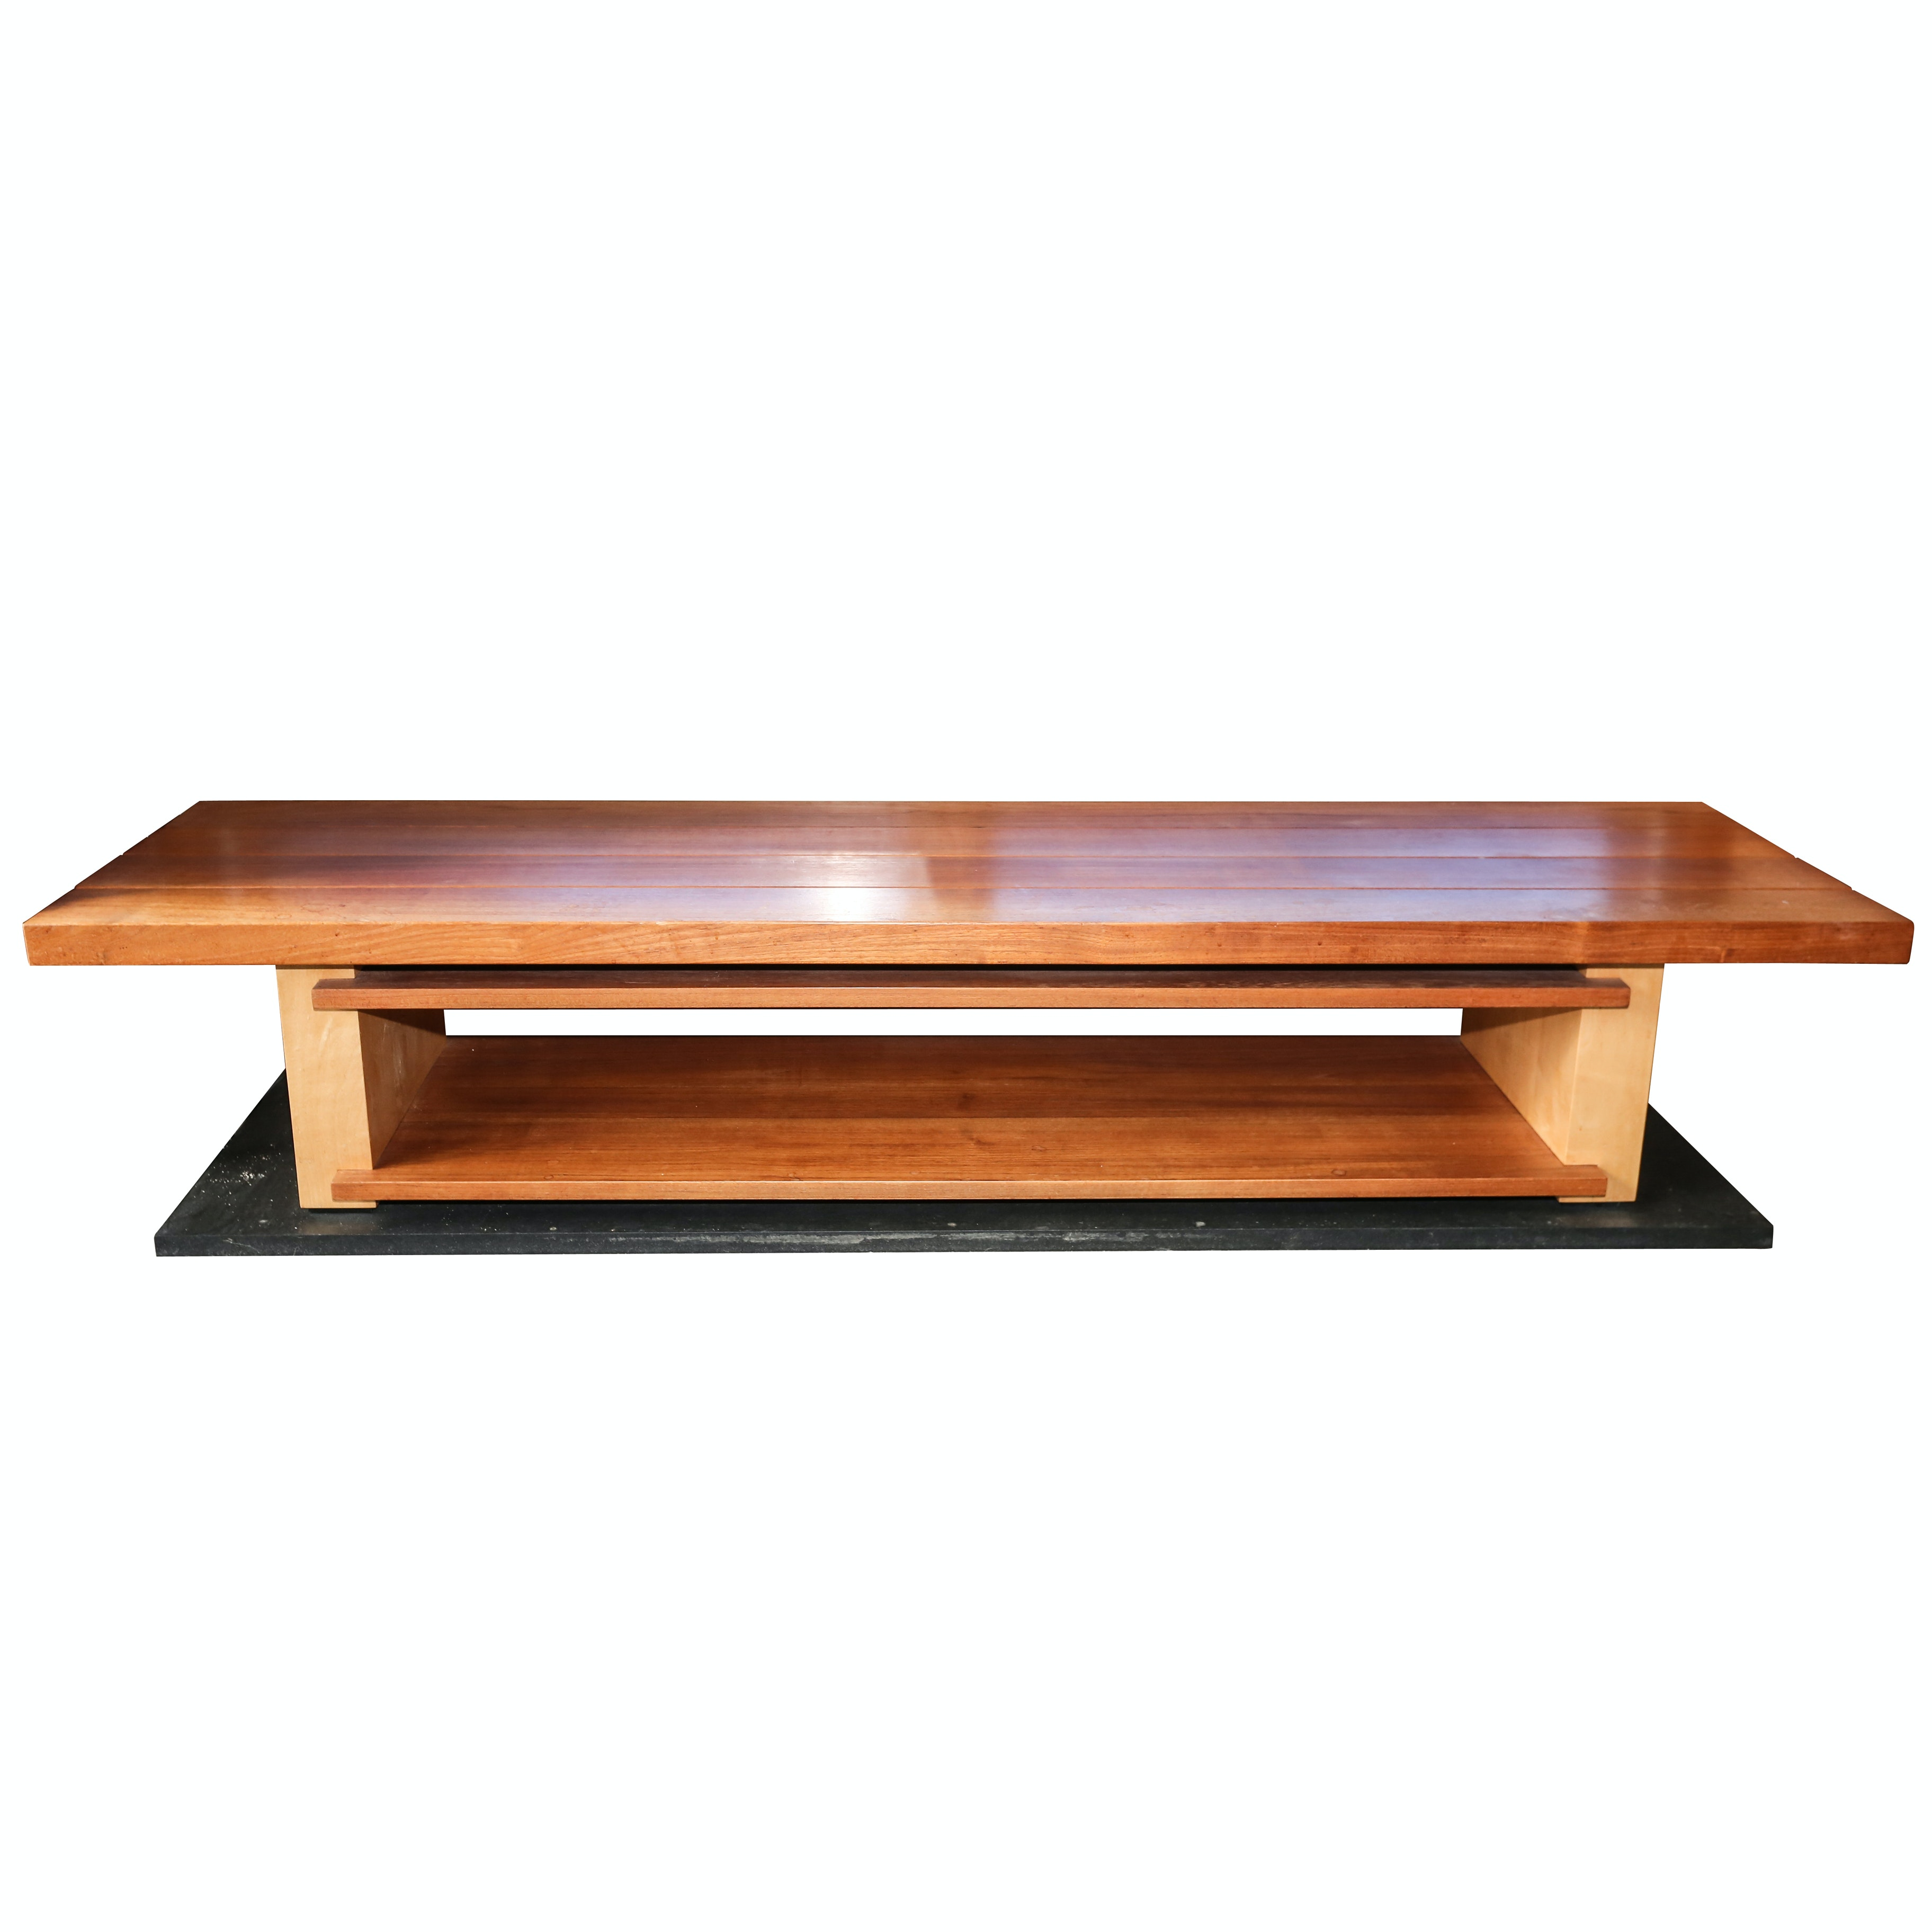 Teak Two-Tier Platform Coffee Table, 20th Century